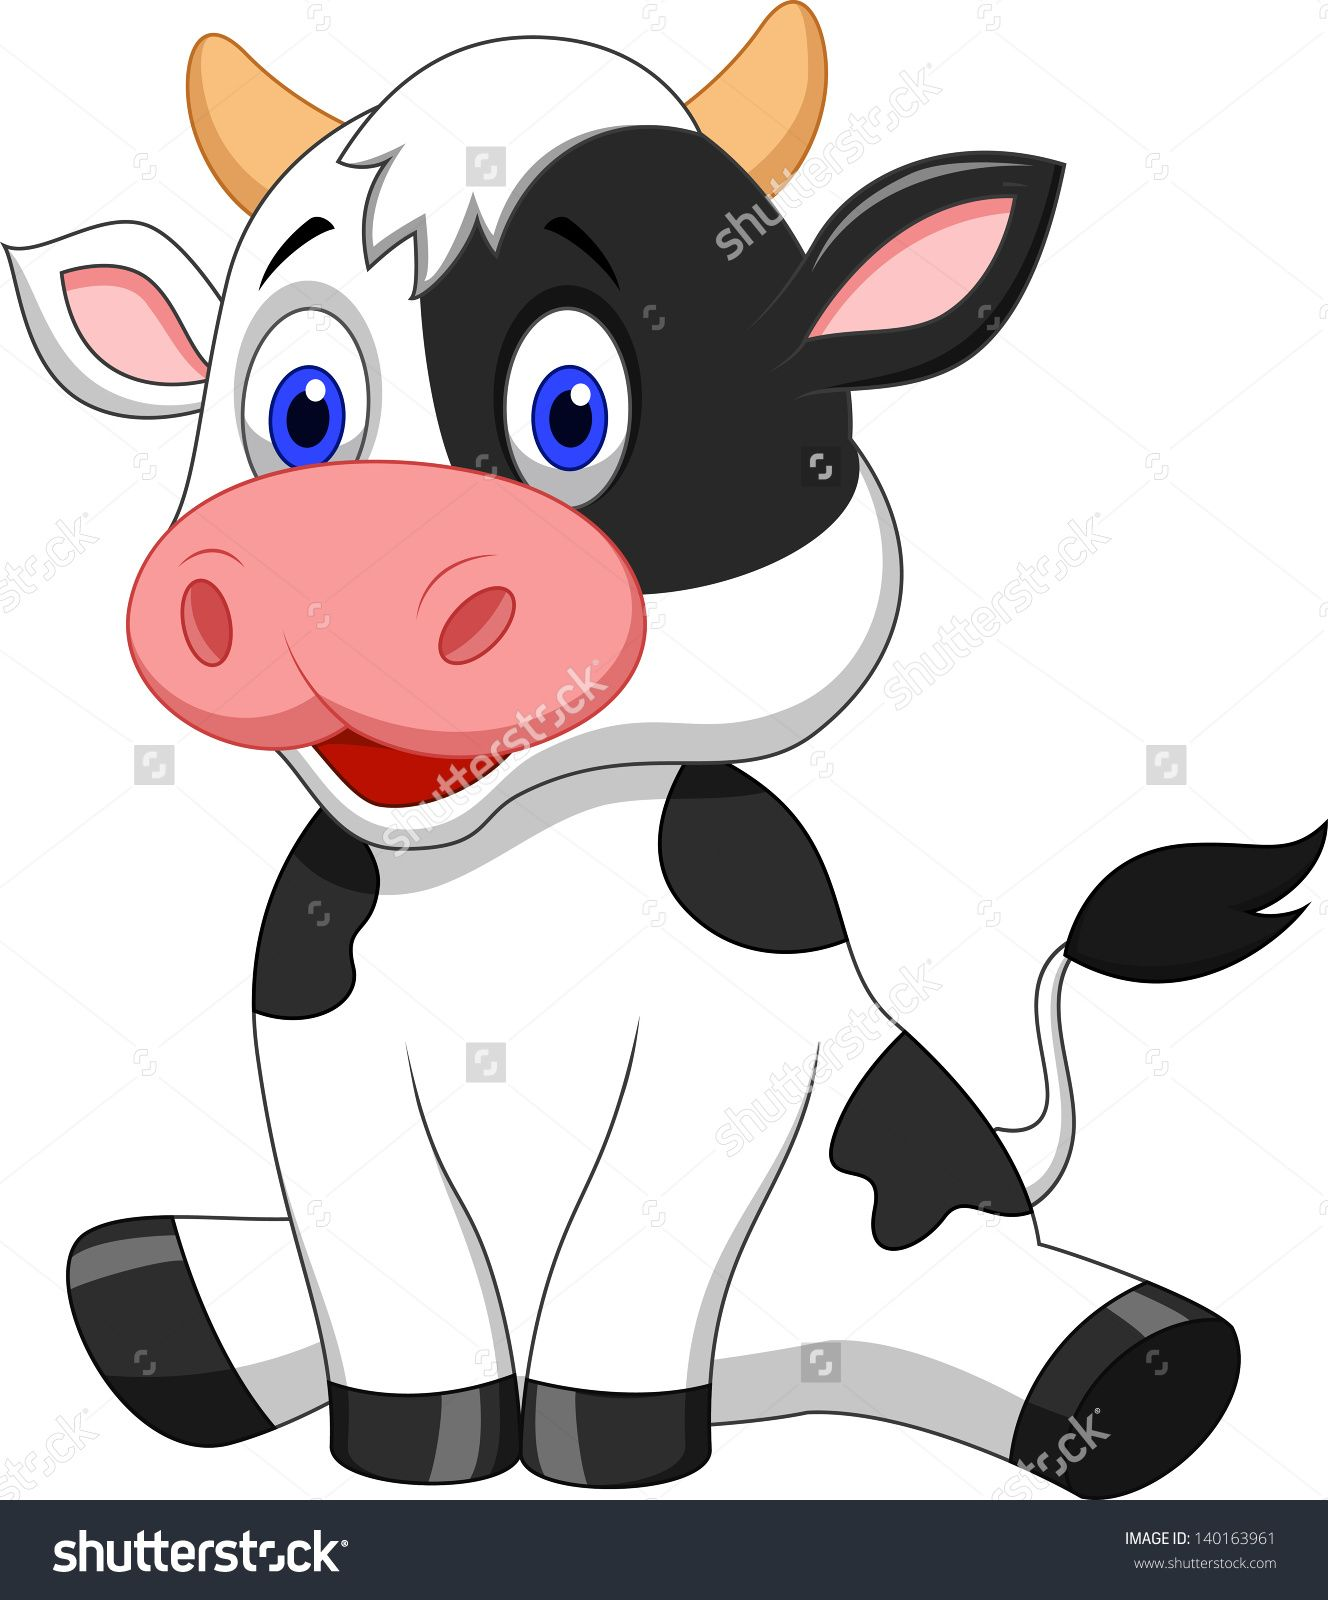 Cute Baby Cow Cartoon Stock Vector Illustration 140163961.